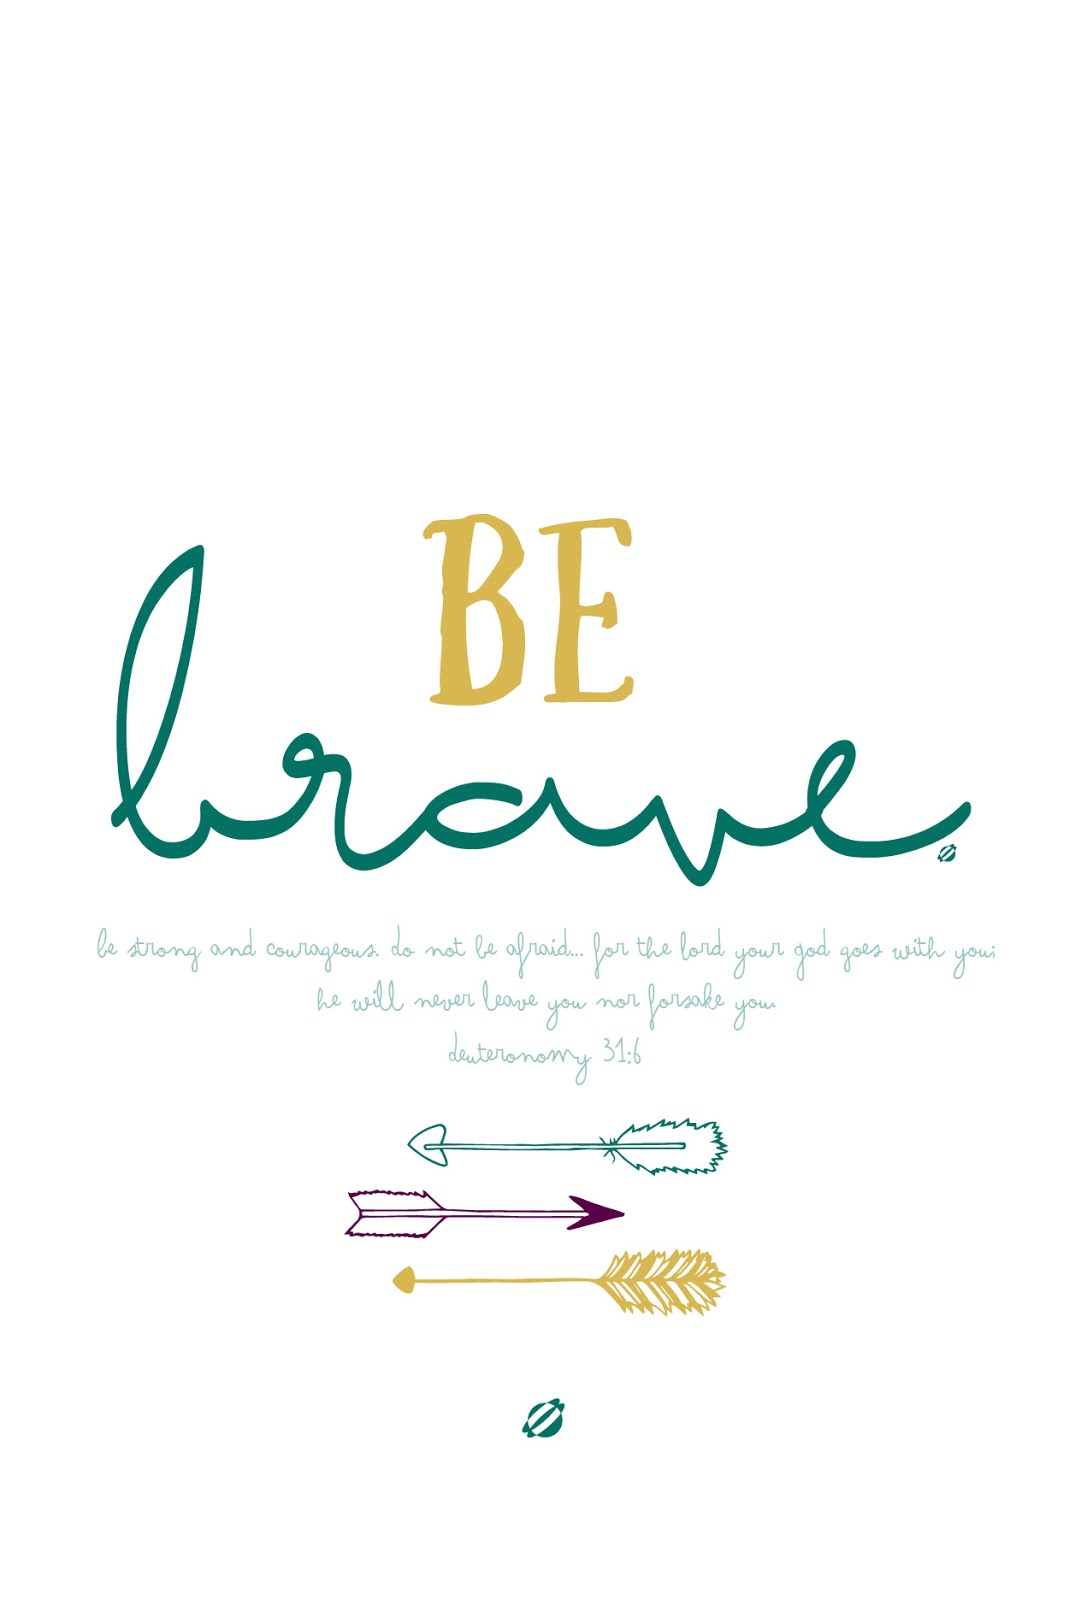 LostBumblebee ©2014 Be BRAVE - Bible- Free Printable - Personal Use Only